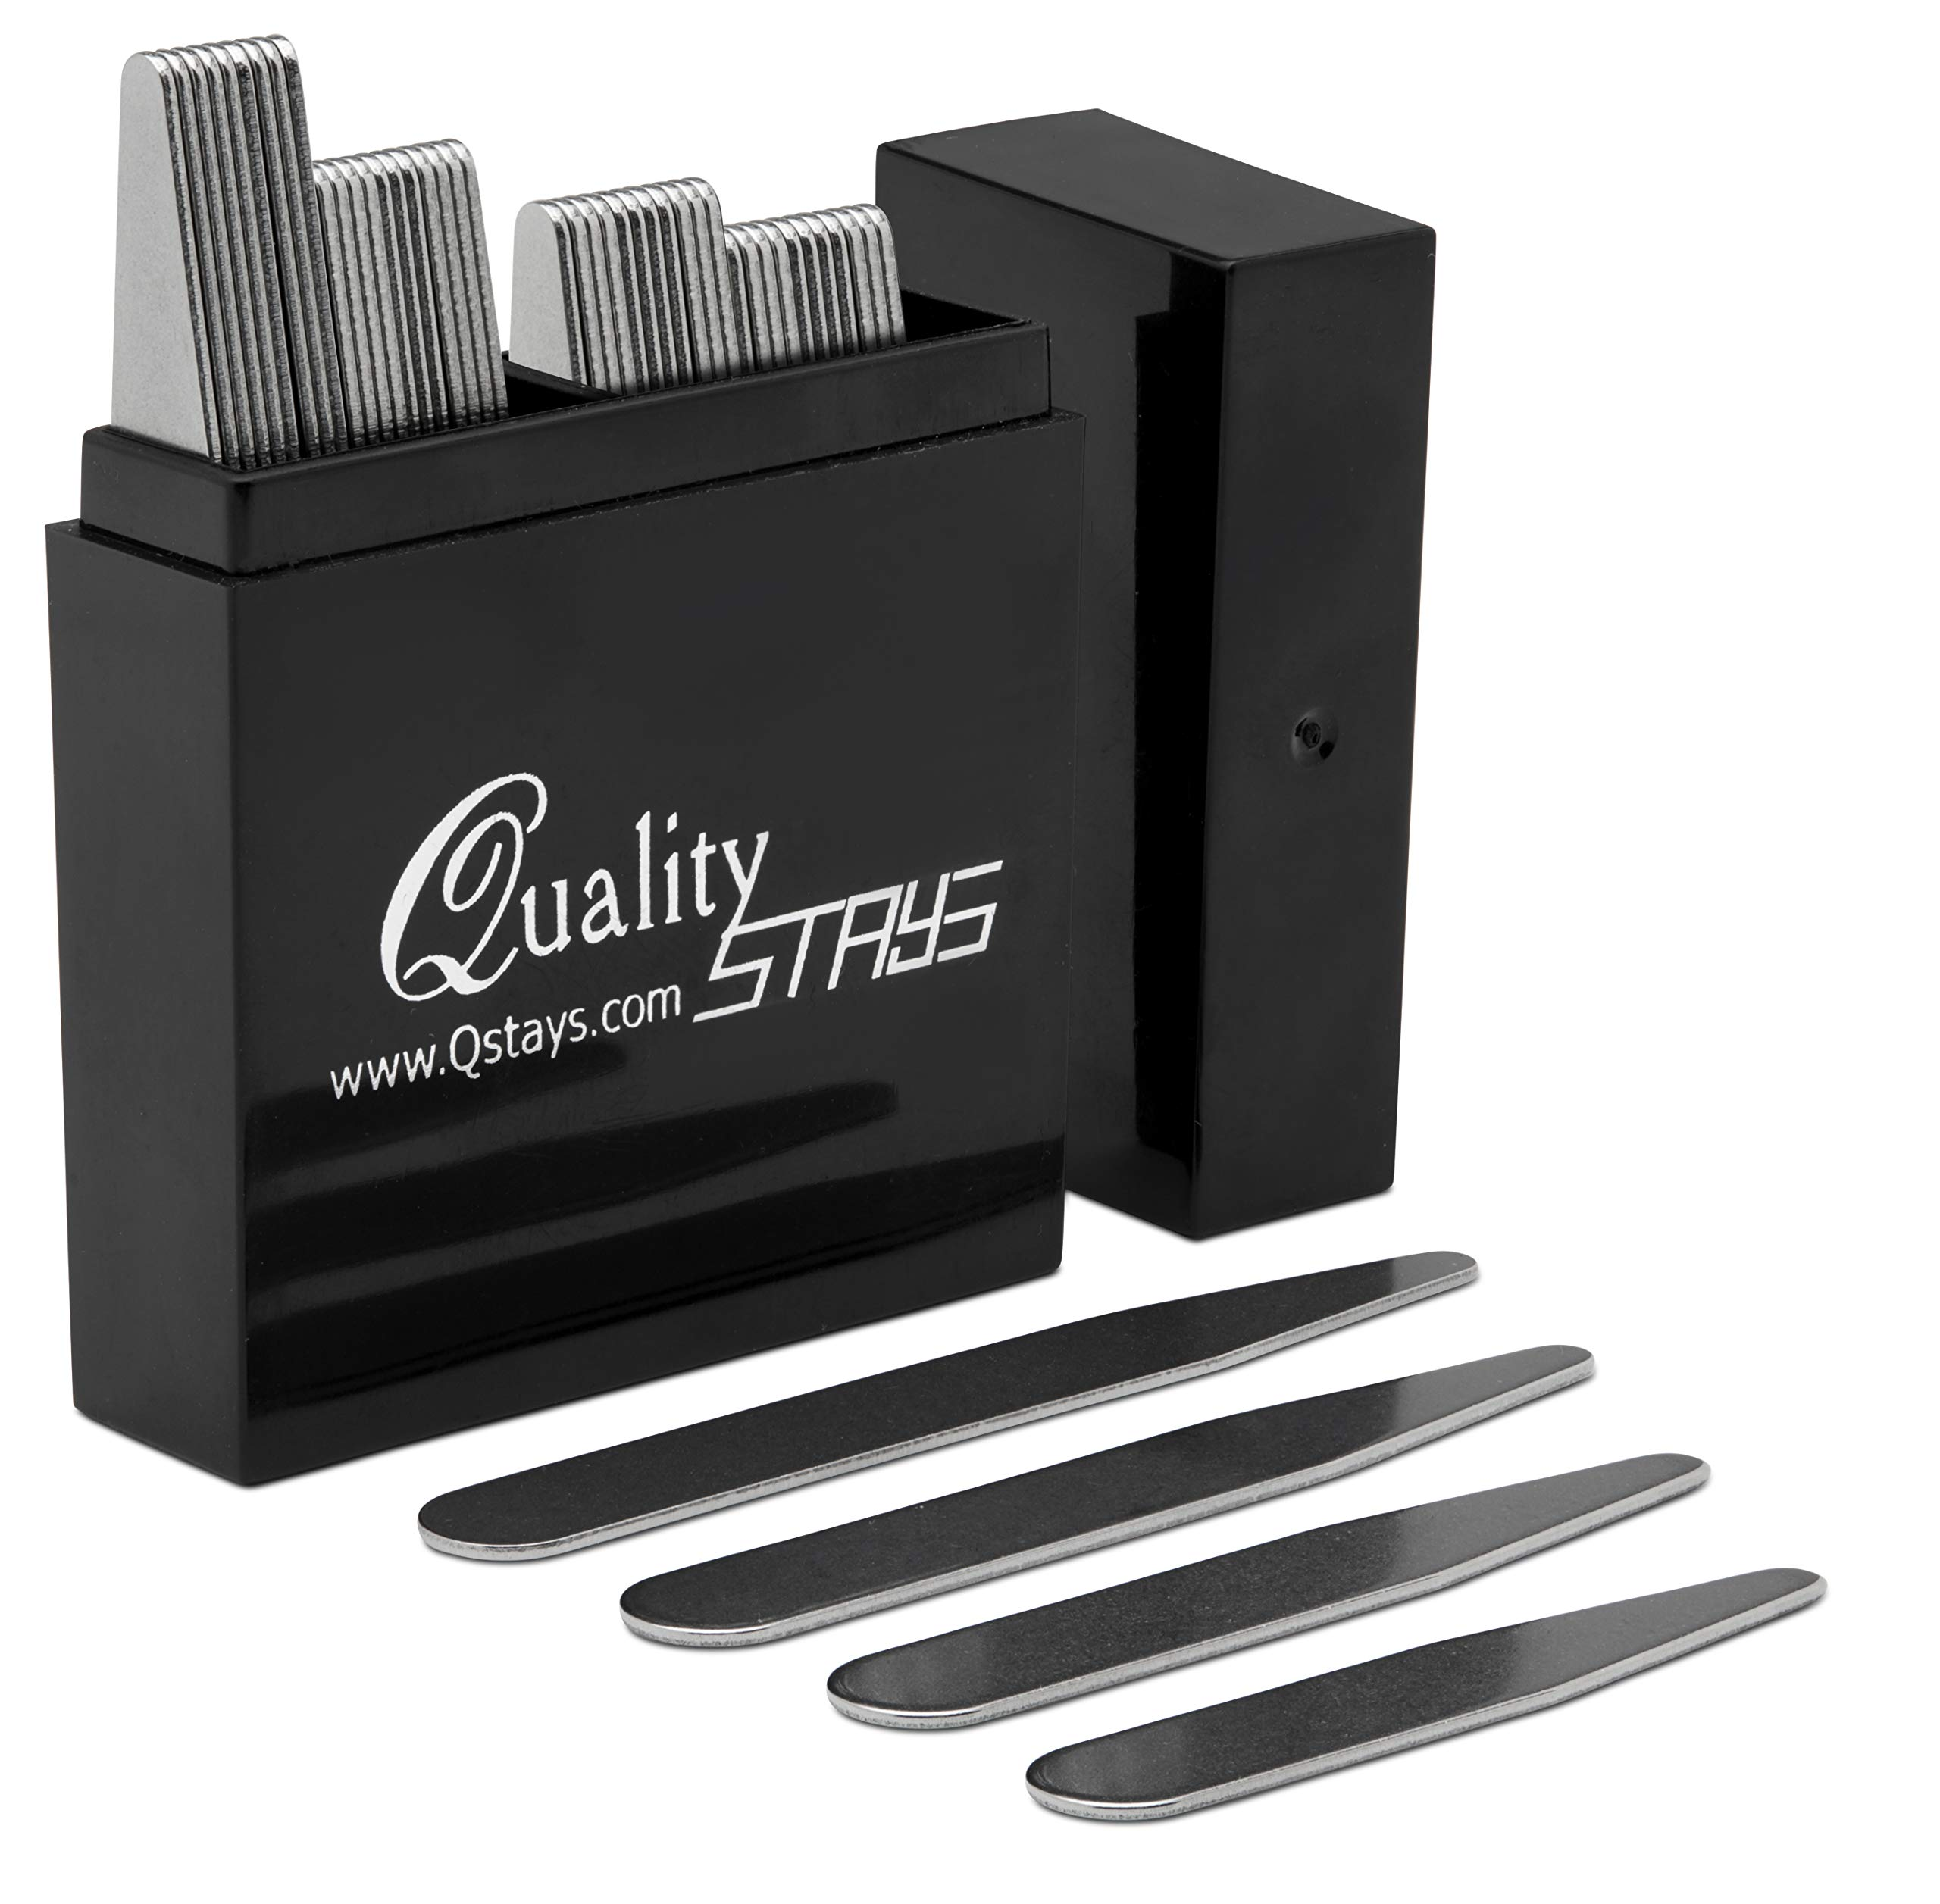 40 Metal Collar Stays in a Box - 4 Sizes